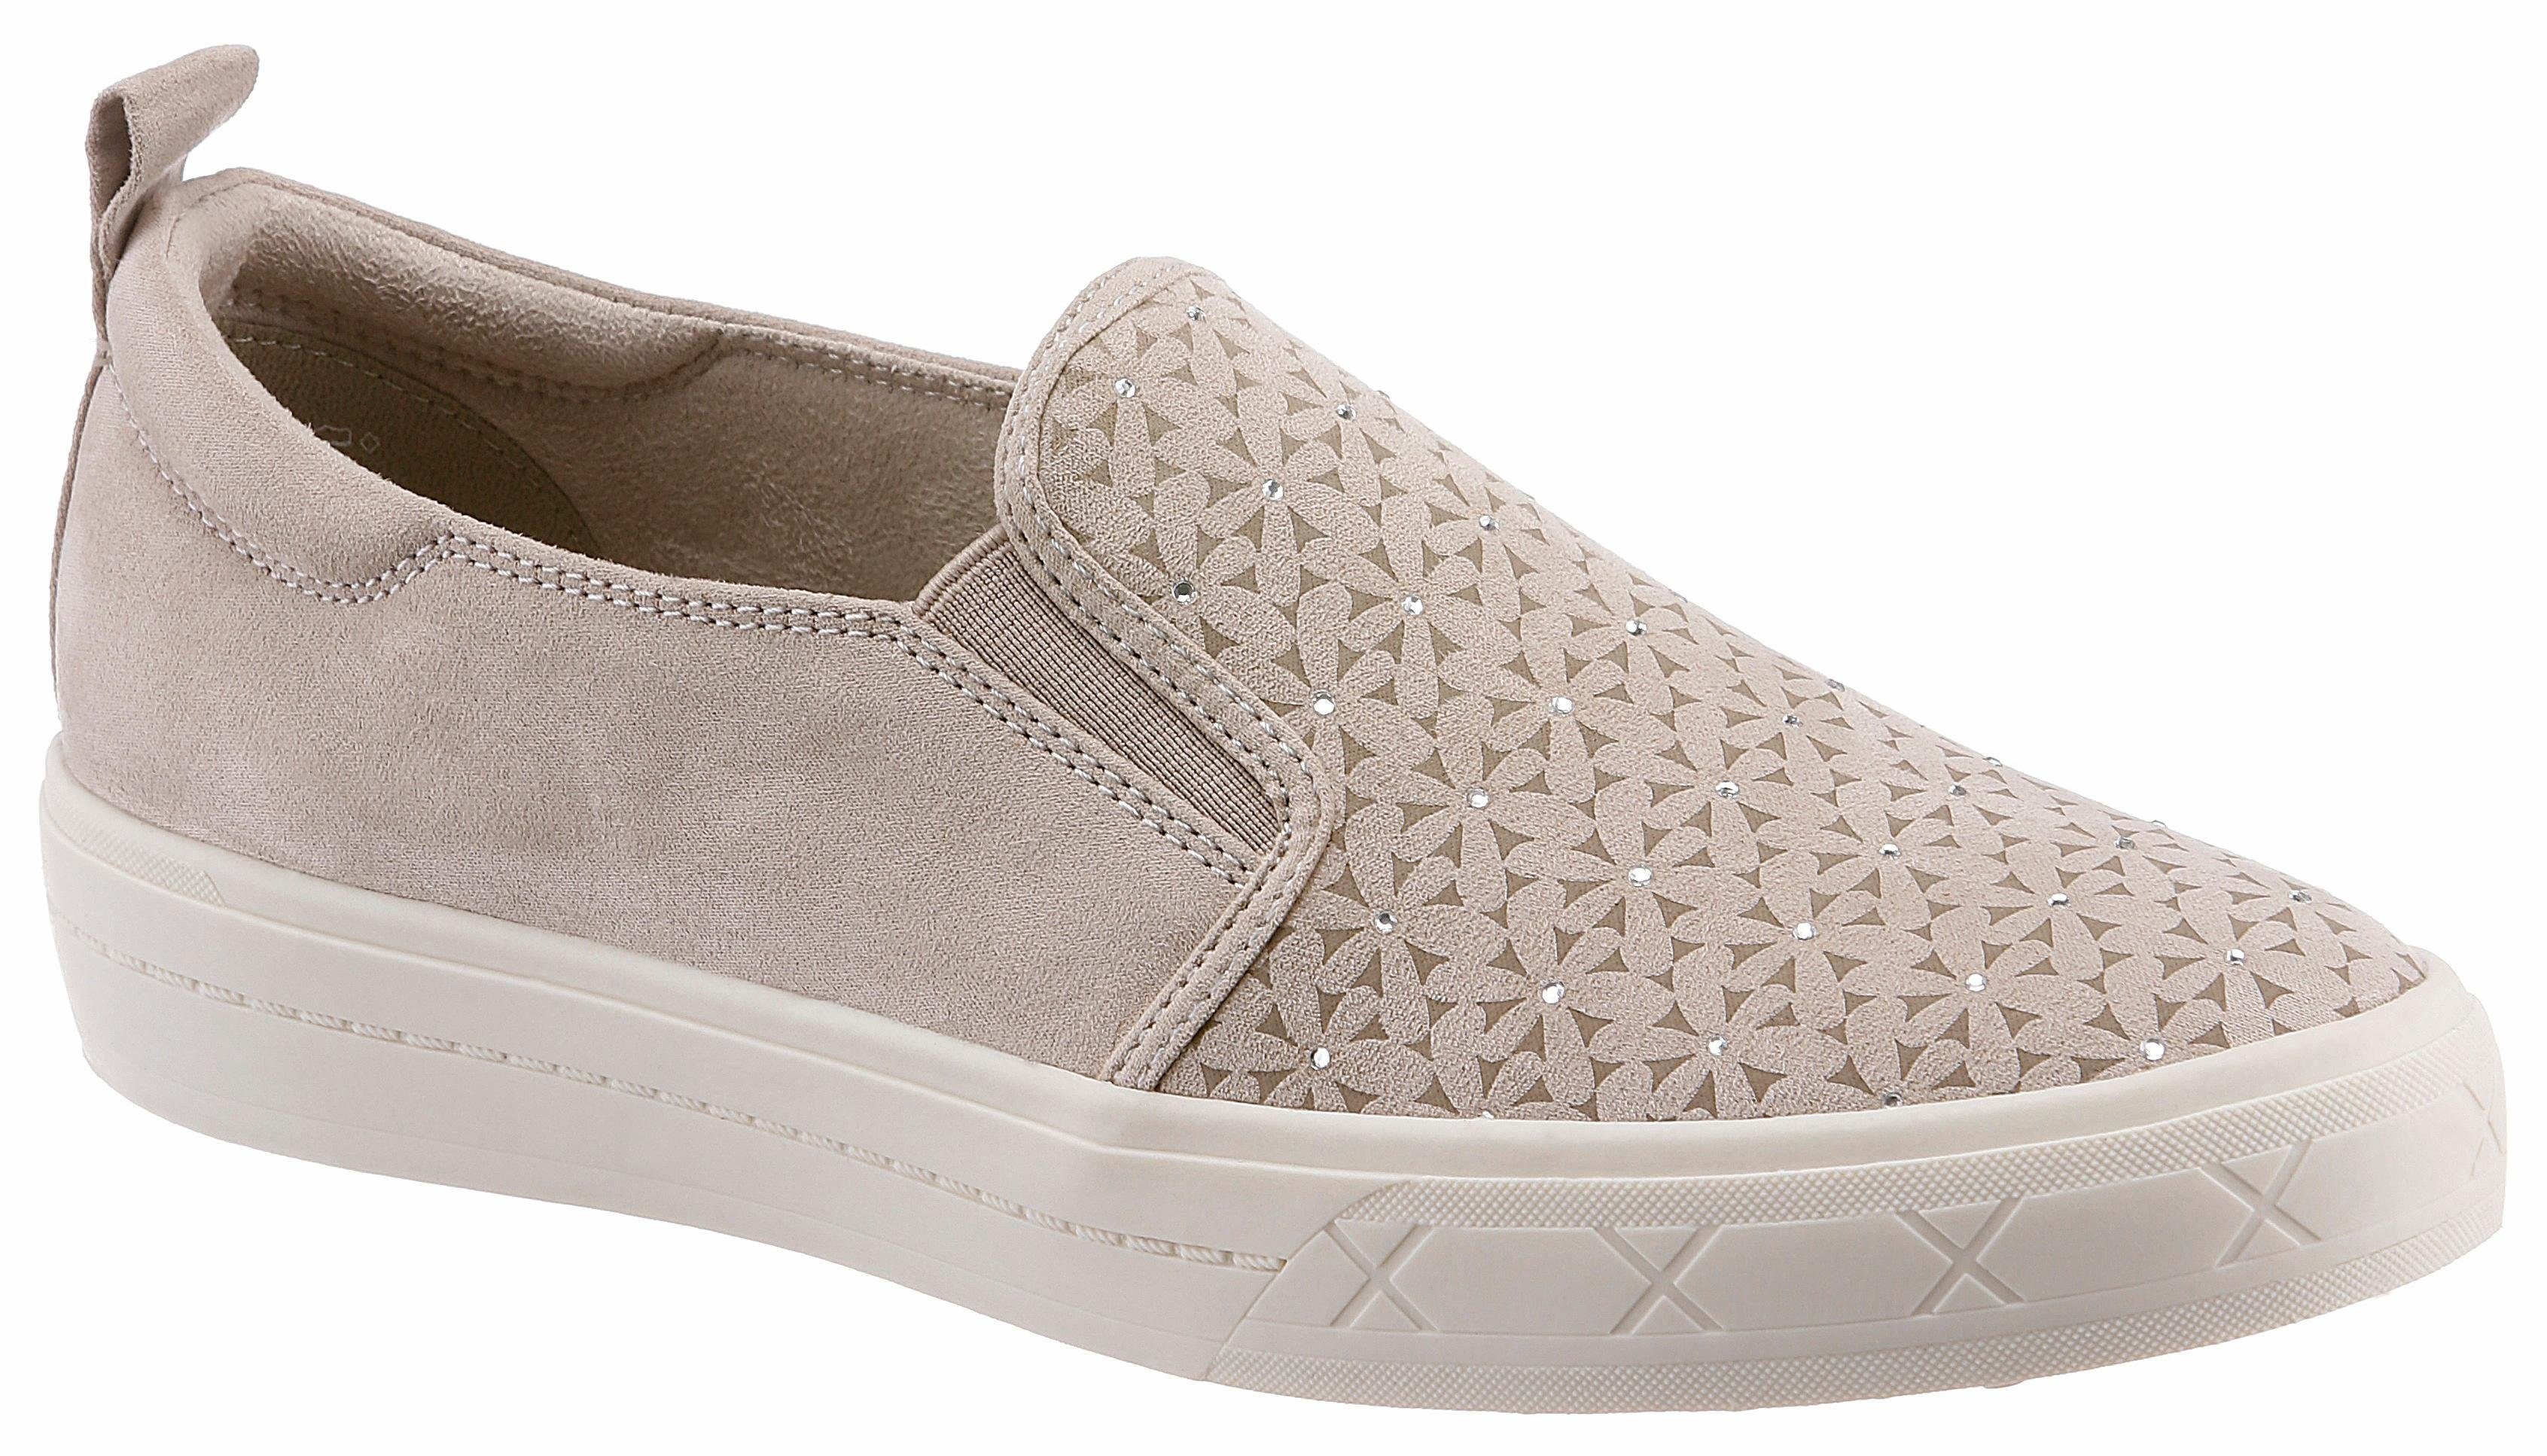 Tamaris Marras Slip-On Sneaker online kaufen  beige